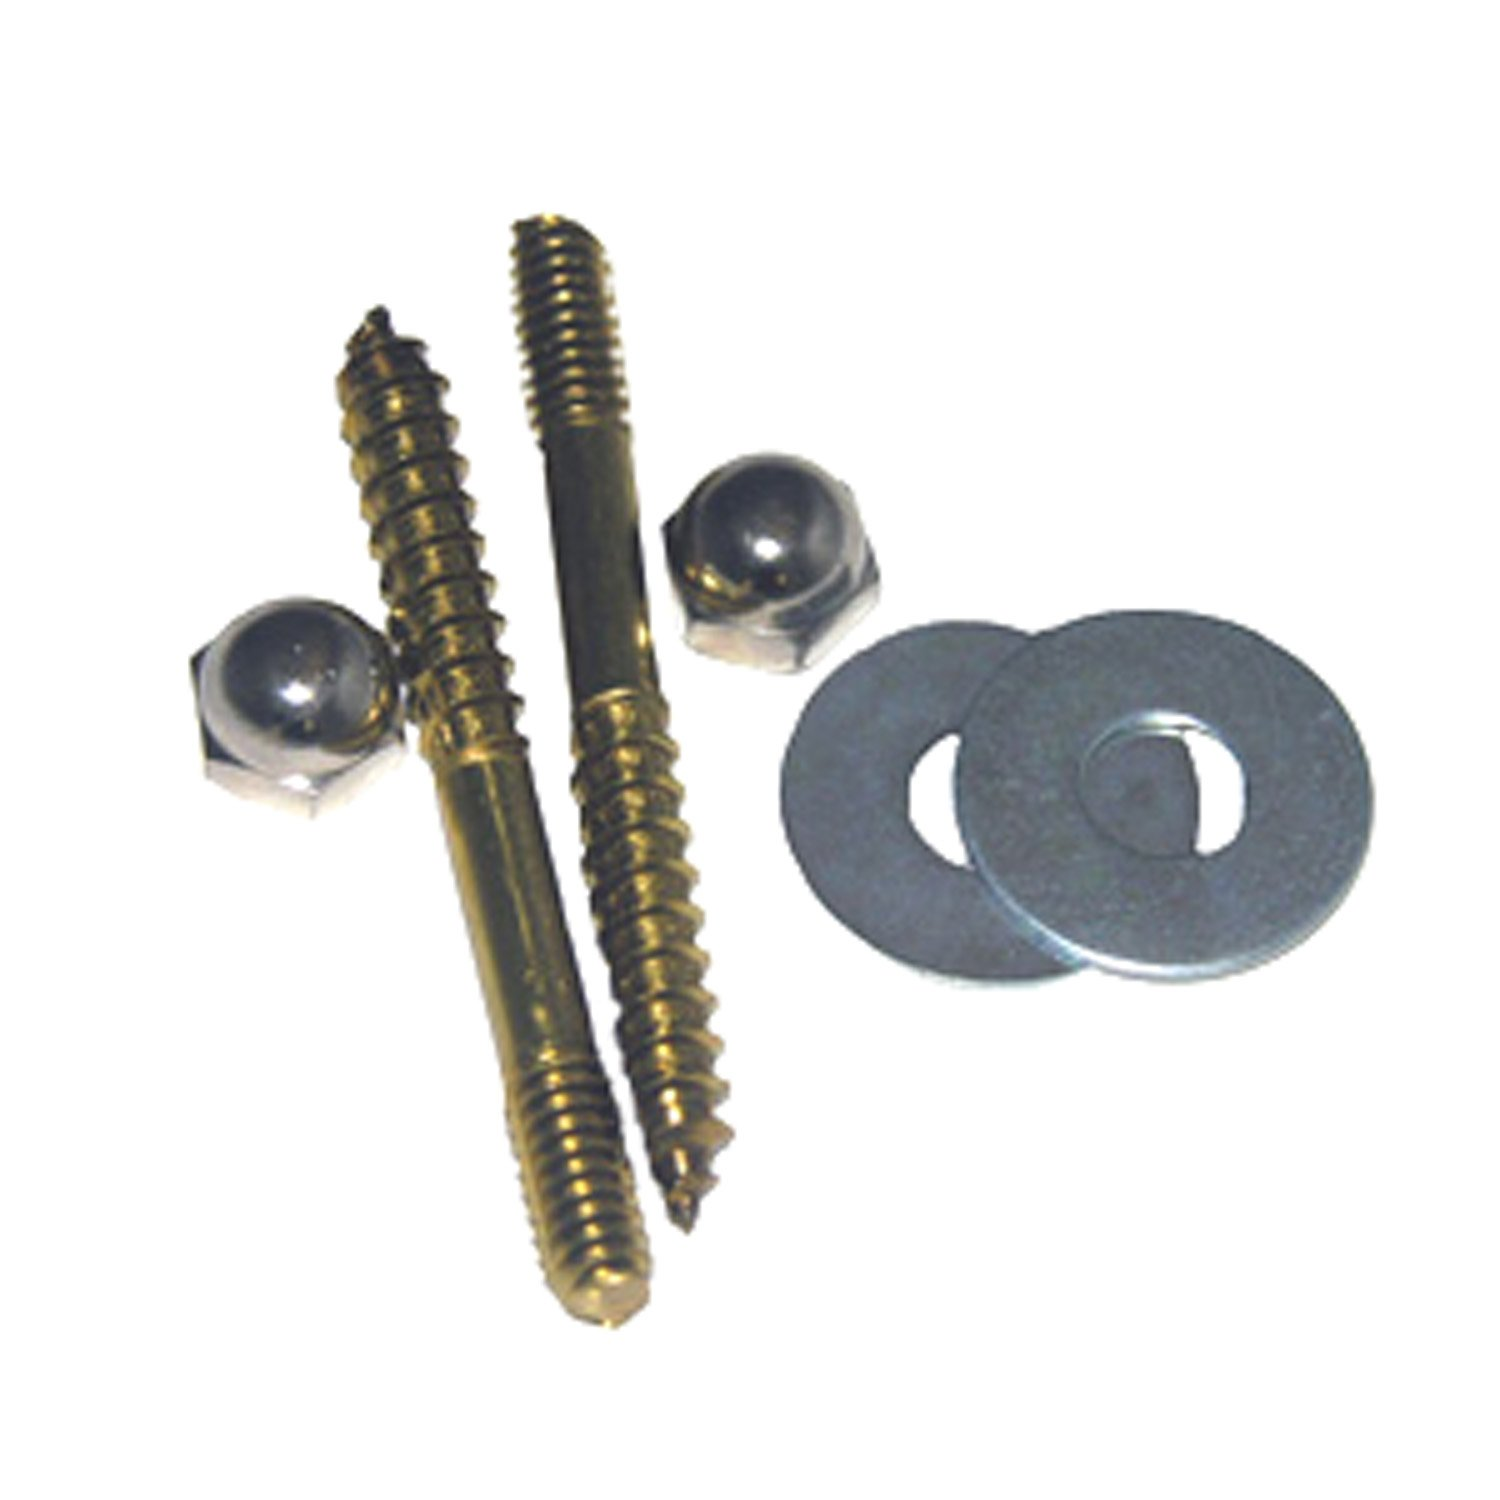 LASCO 04-3601 Toilet Screws with Solid Brass 1//4-Inch by 2-1//2-Inch with Nuts and Washers